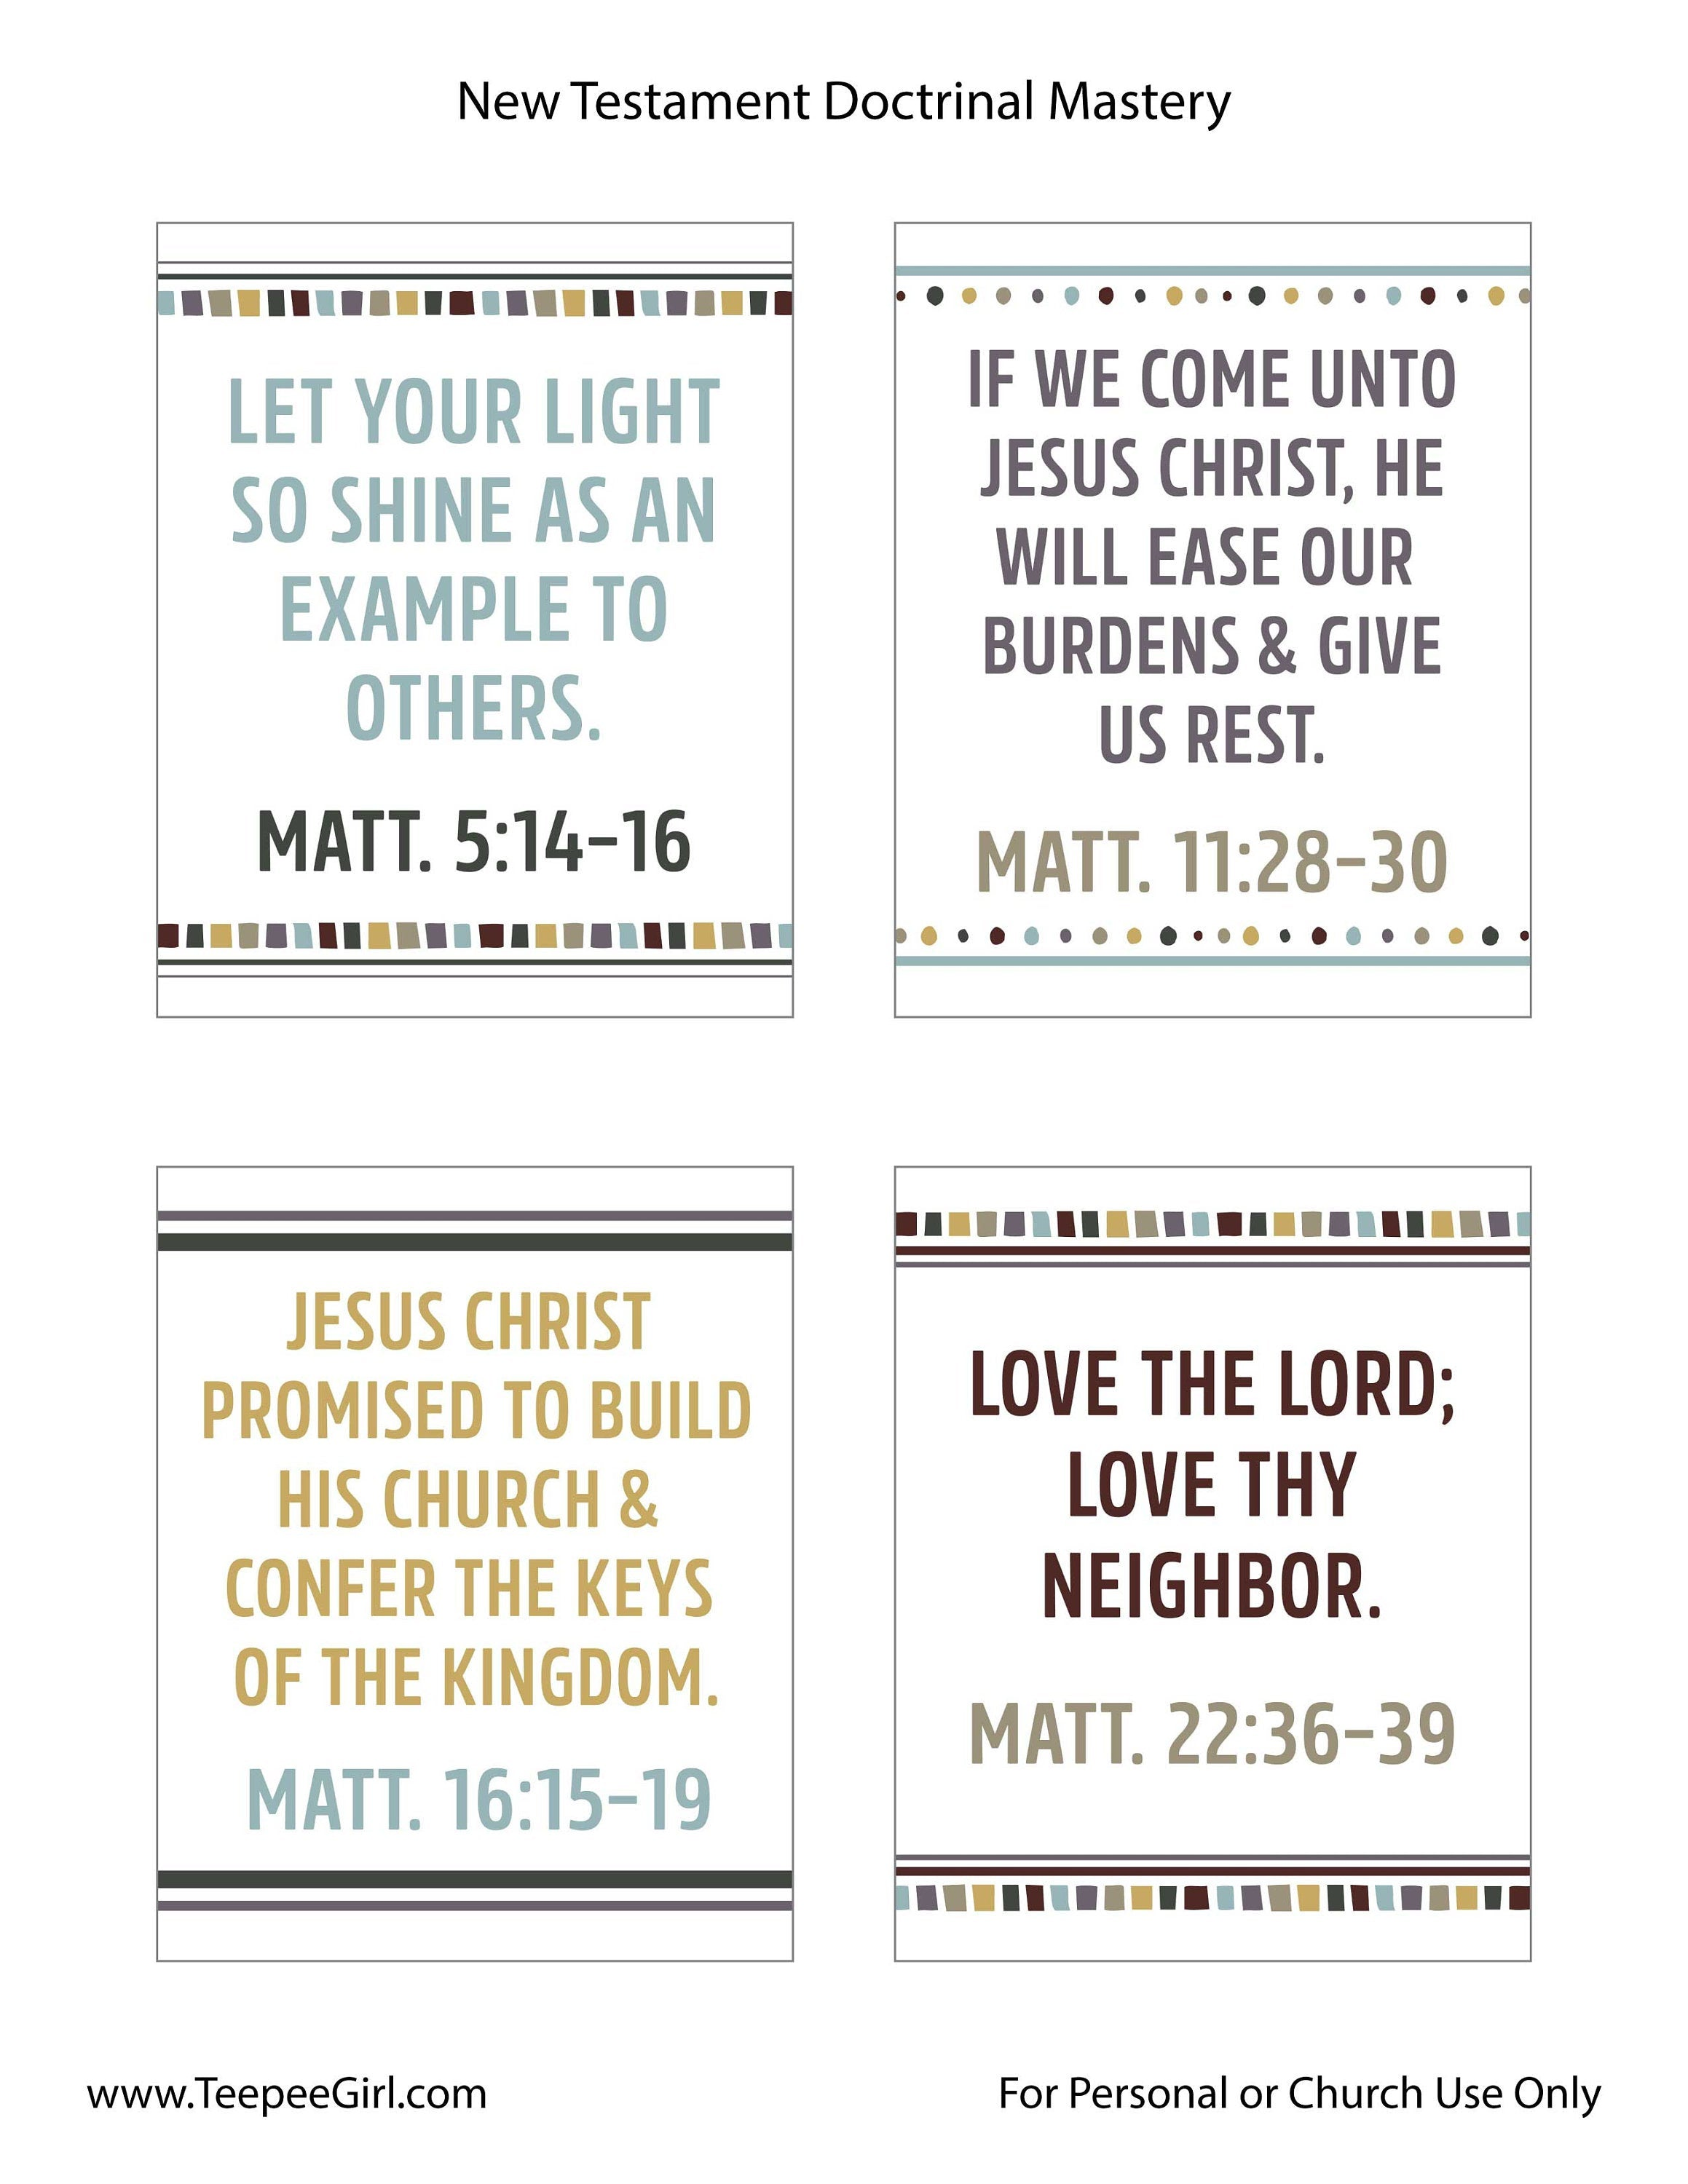 New Testament Seminary Doctrinal Mastery Posters | LDS